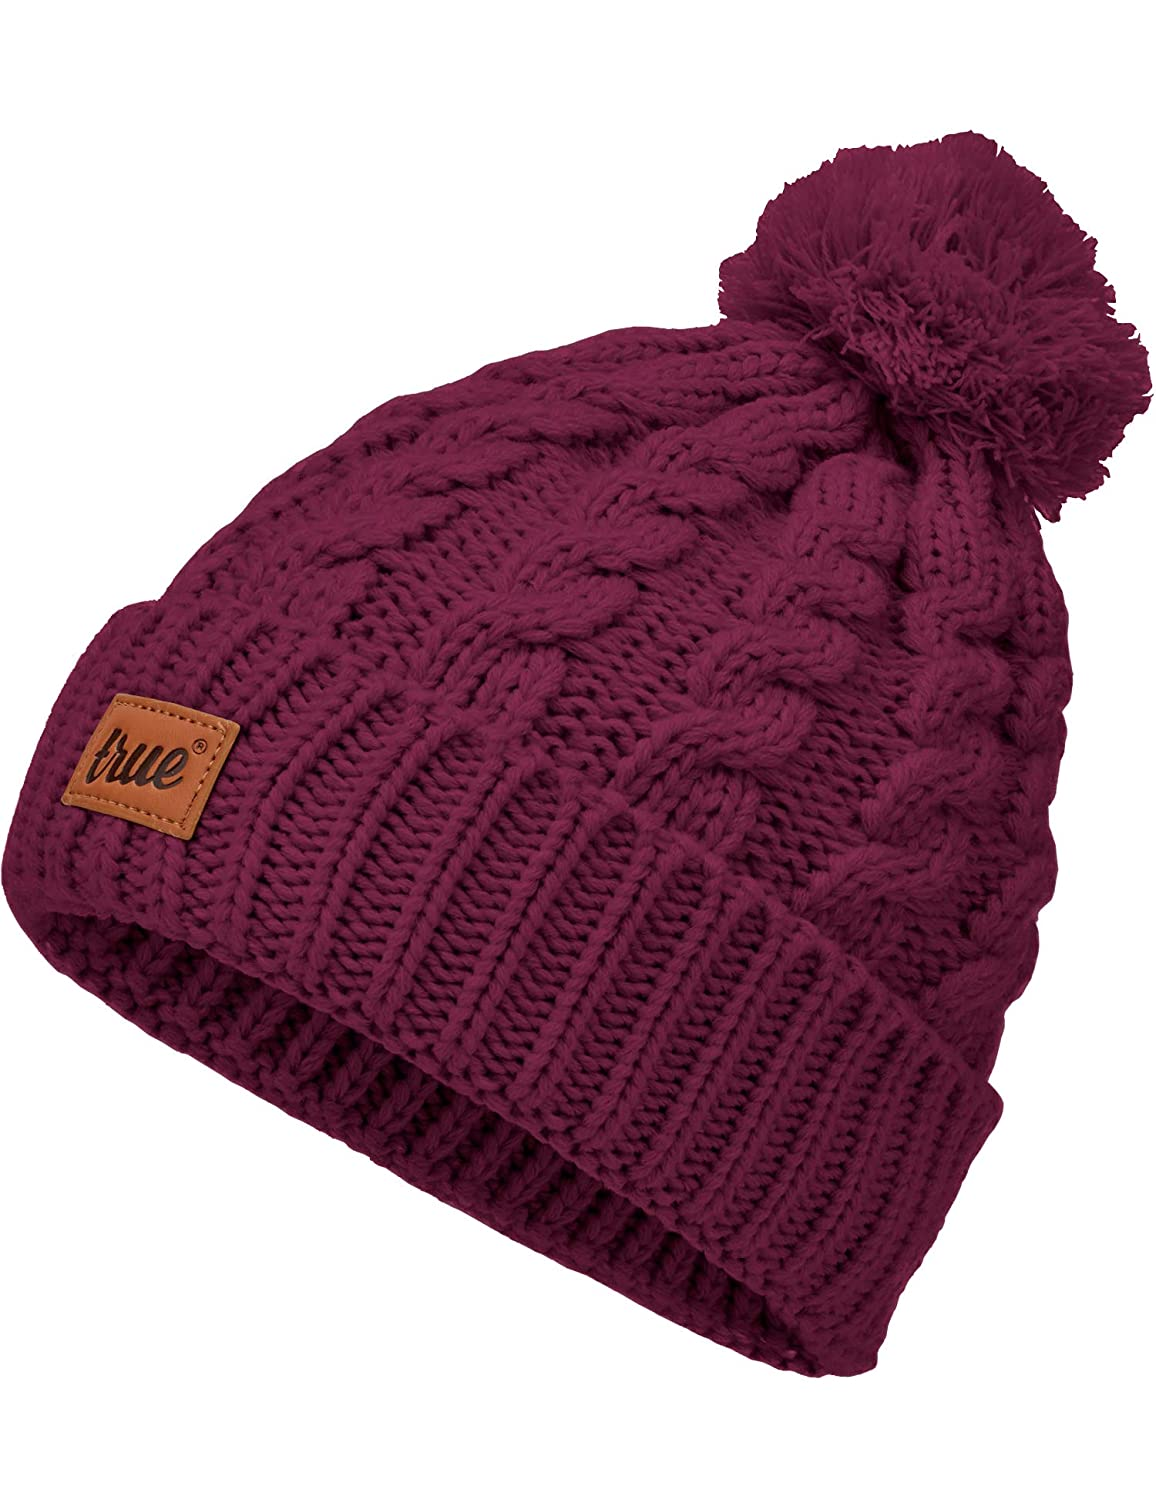 da9301a7eddd1 TRUE VISION Womens Beanie Hat - Warm Cable Knitted Toque Bobble Hat with 2  Poms  Amazon.ca  Clothing   Accessories